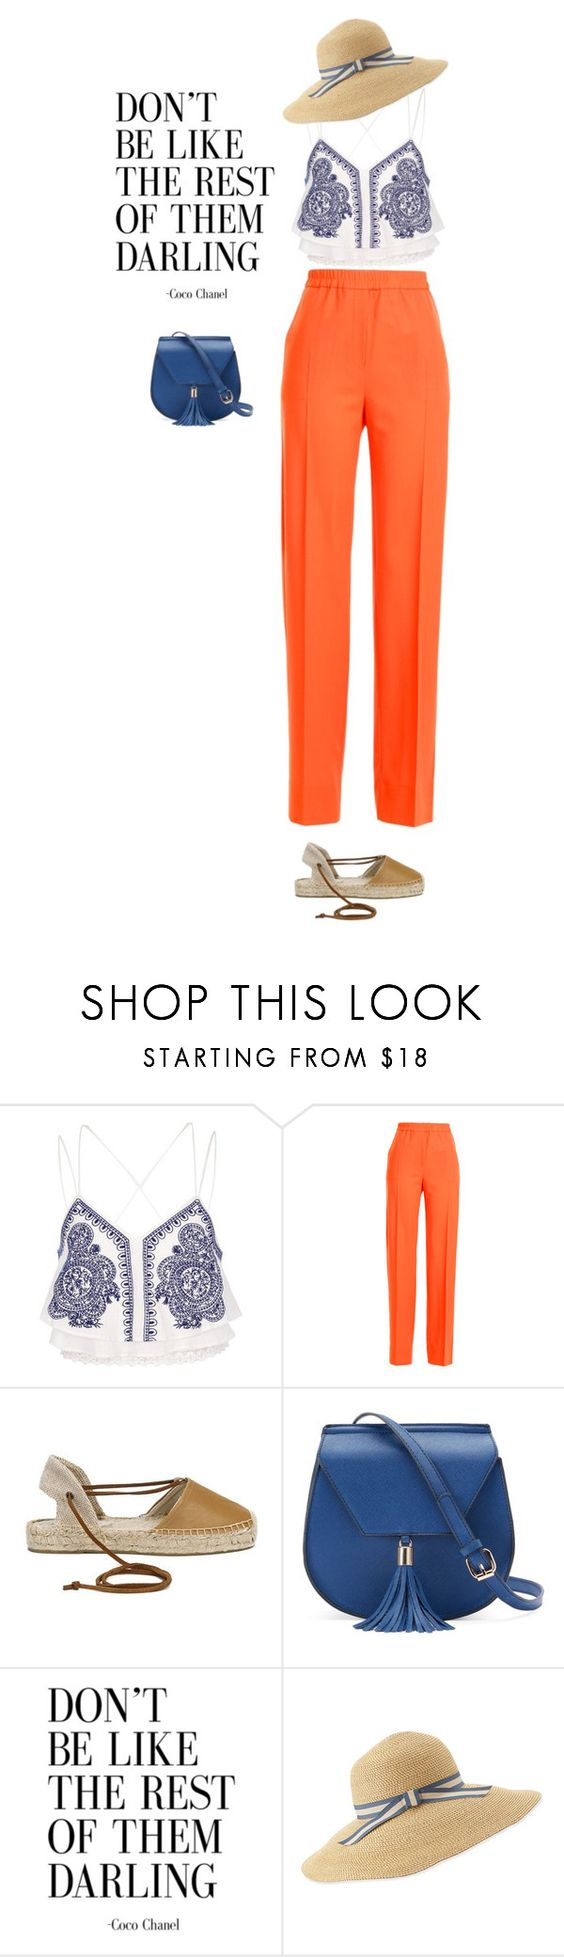 """""""Don't be..."""" by lseed87 ❤ liked on Polyvore featuring River Island, Jil Sander, Soludos, Yoki and Eric Javits"""